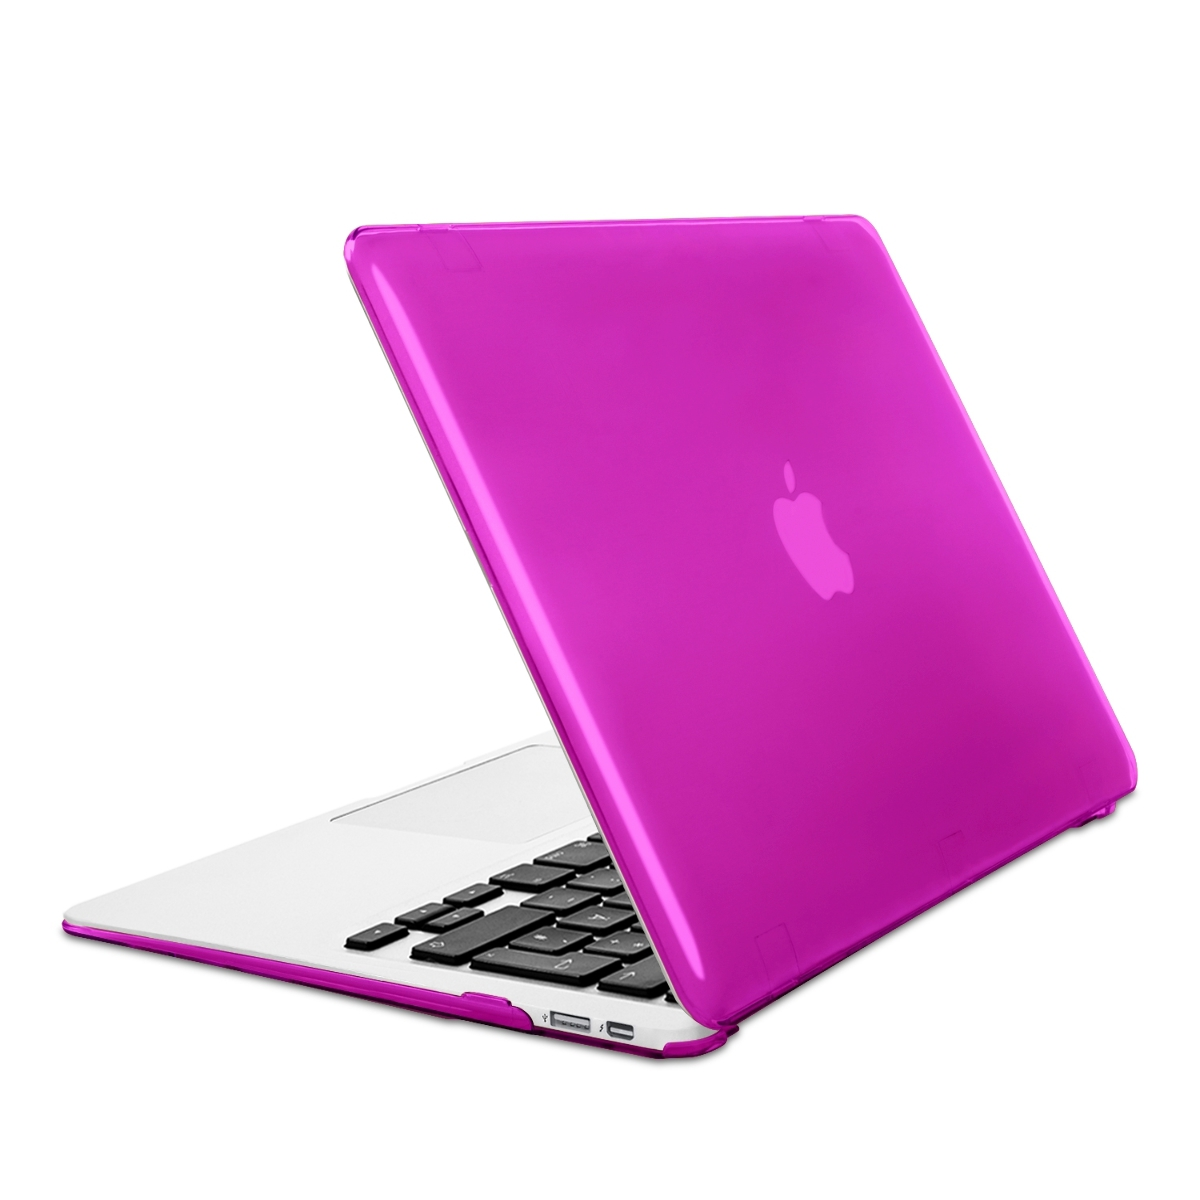 FUNDA-TRANSPARENTE-PARA-APPLE-MACBOOK-AIR-11-034-CARCASA-TRASERA-PROTECTORA